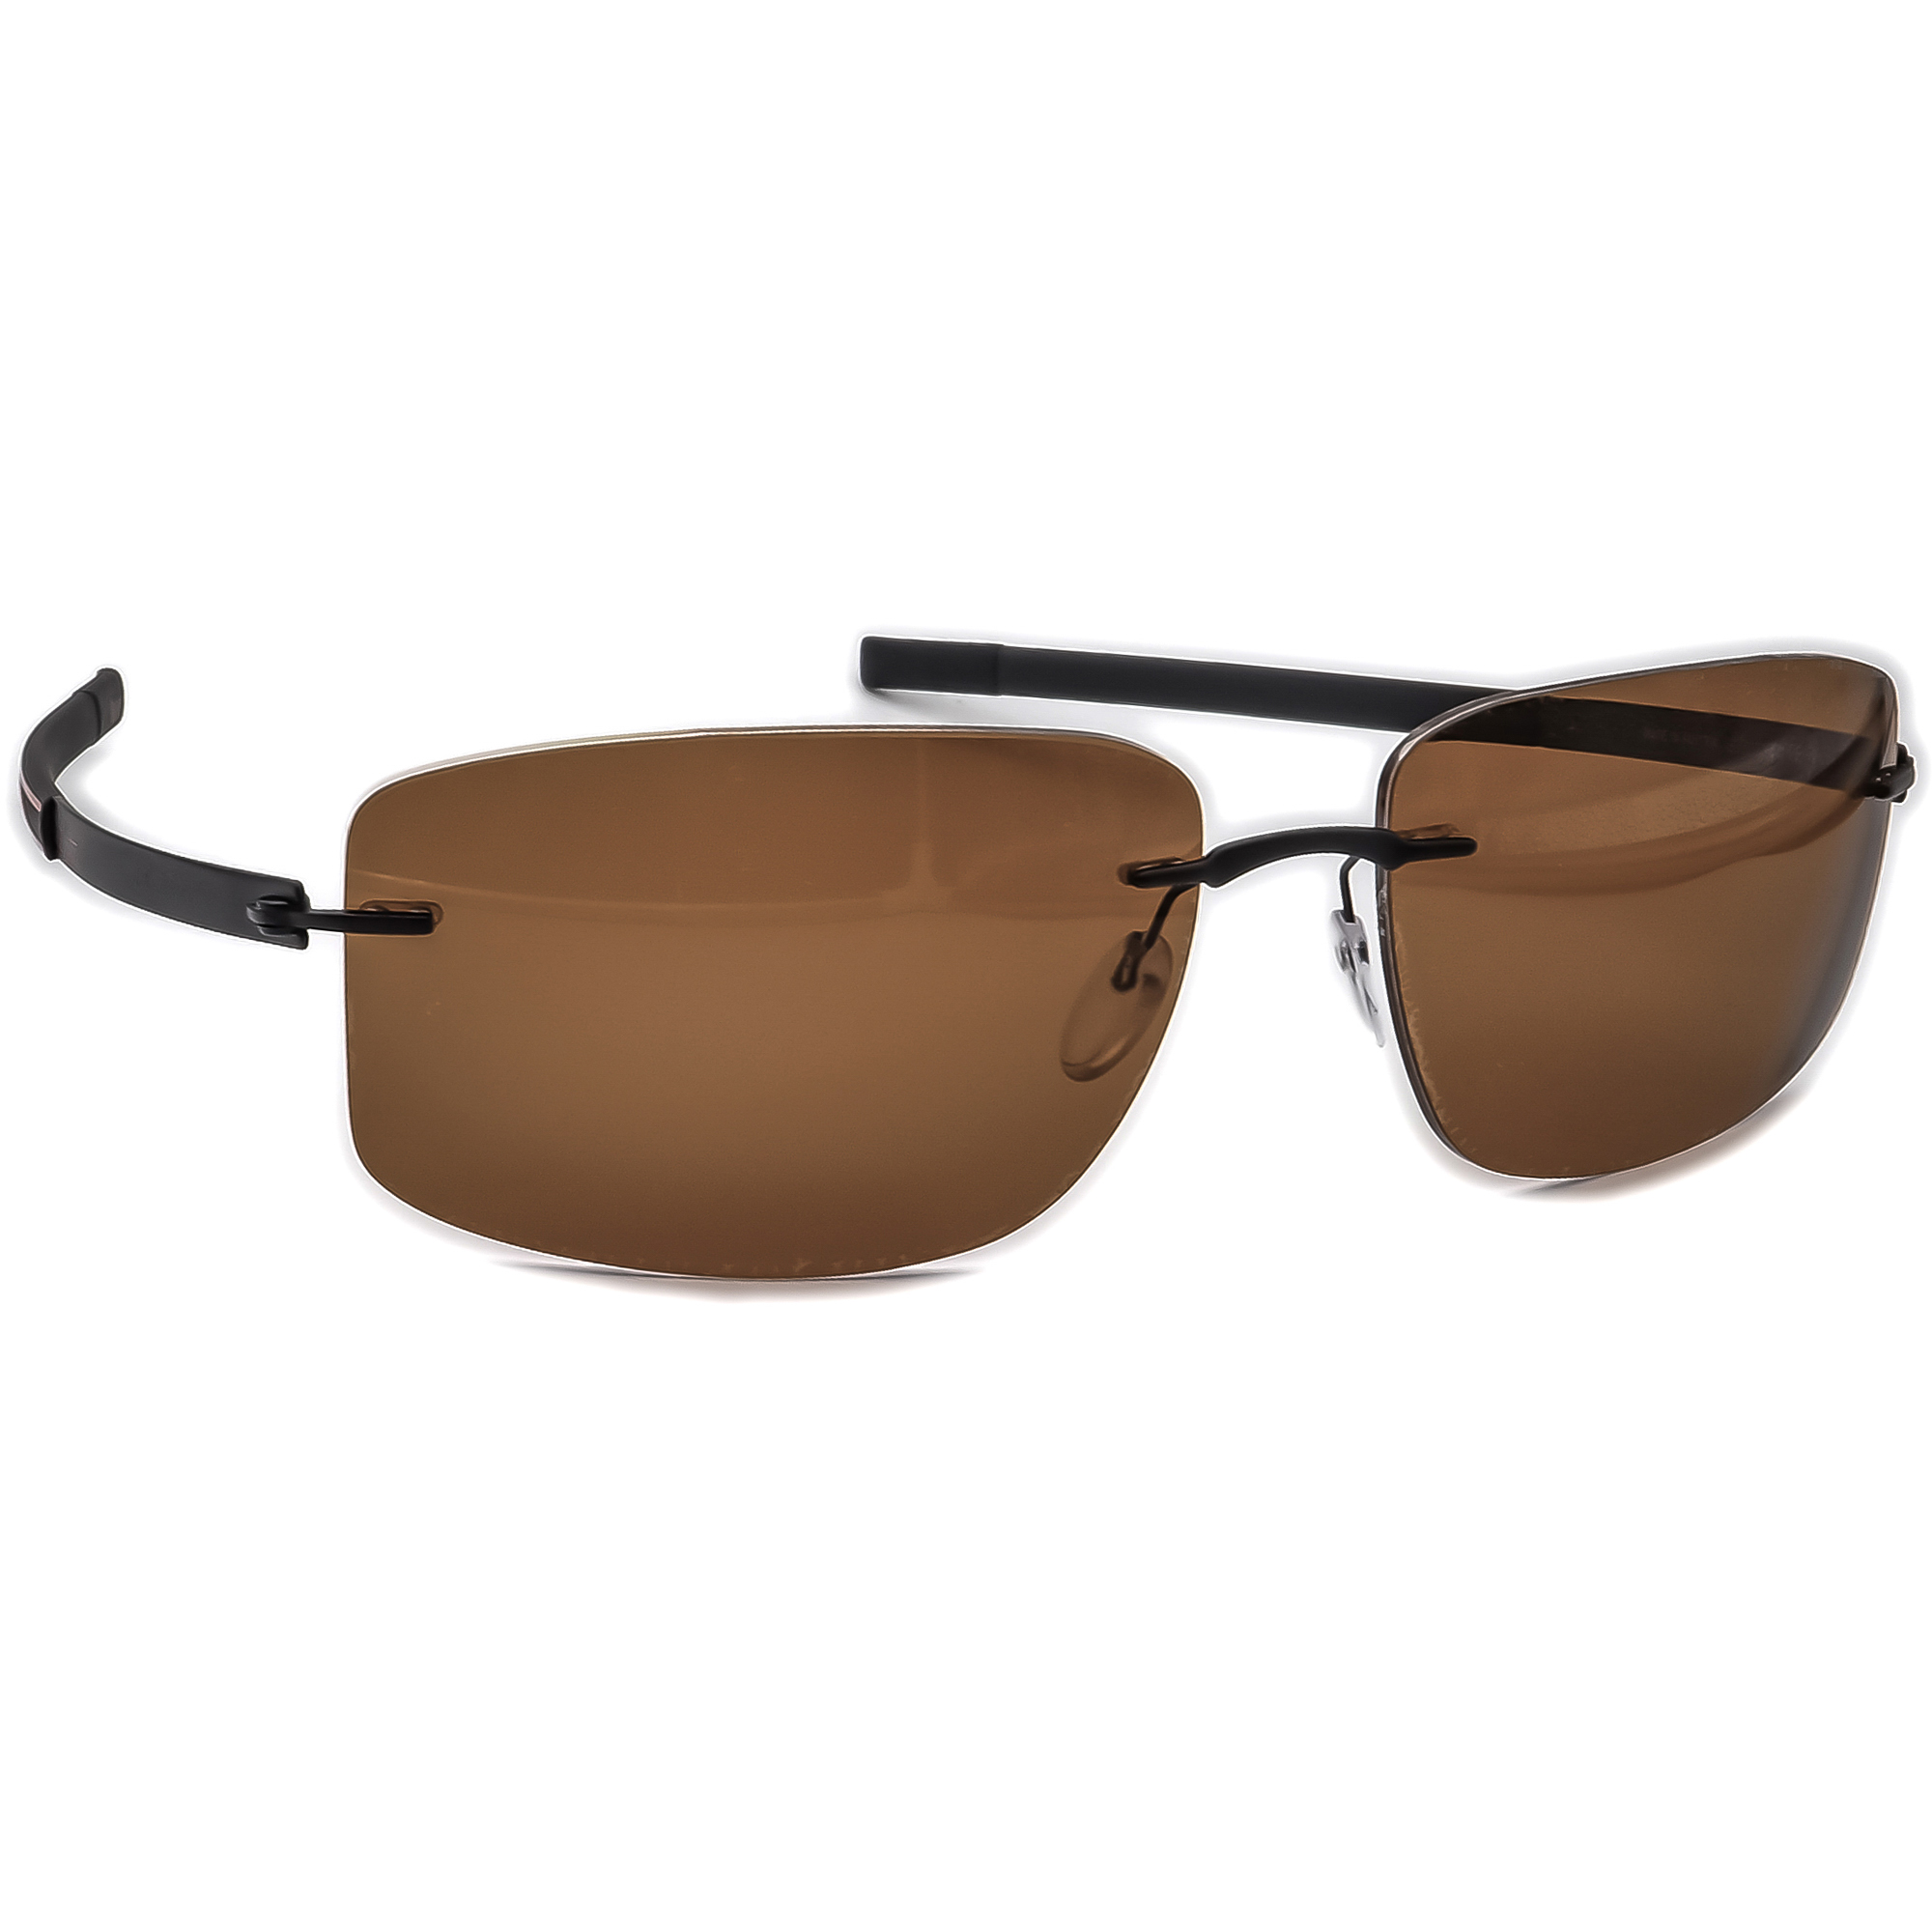 Silhouette 8653 50 6200 Titan Sunglasses Frame Only